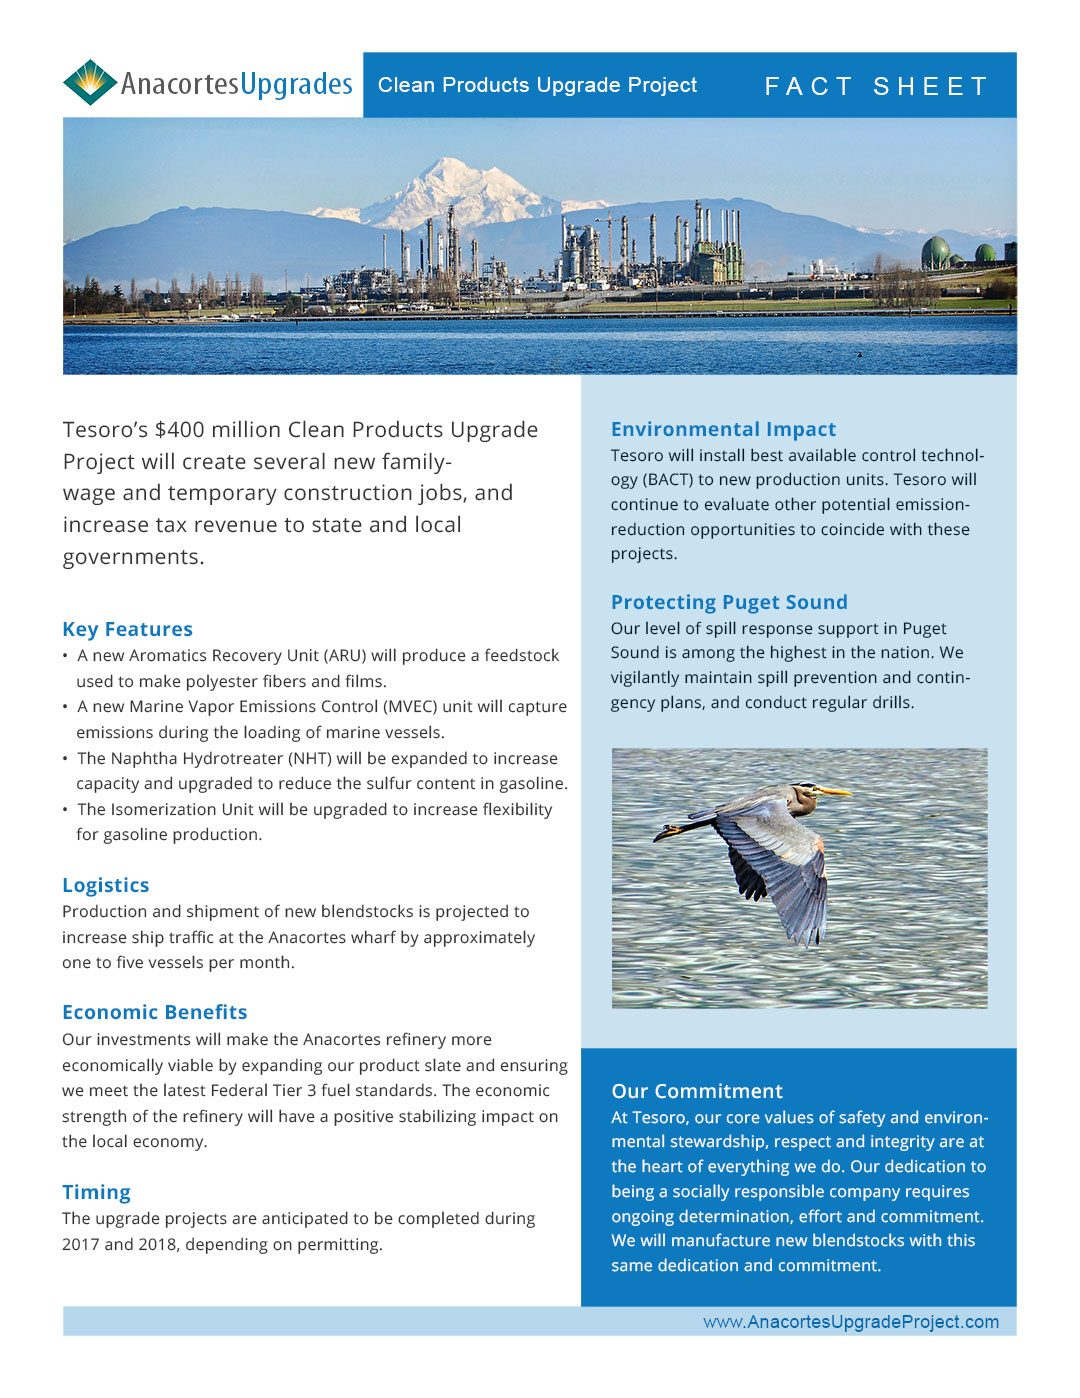 Anacortes project fact sheet